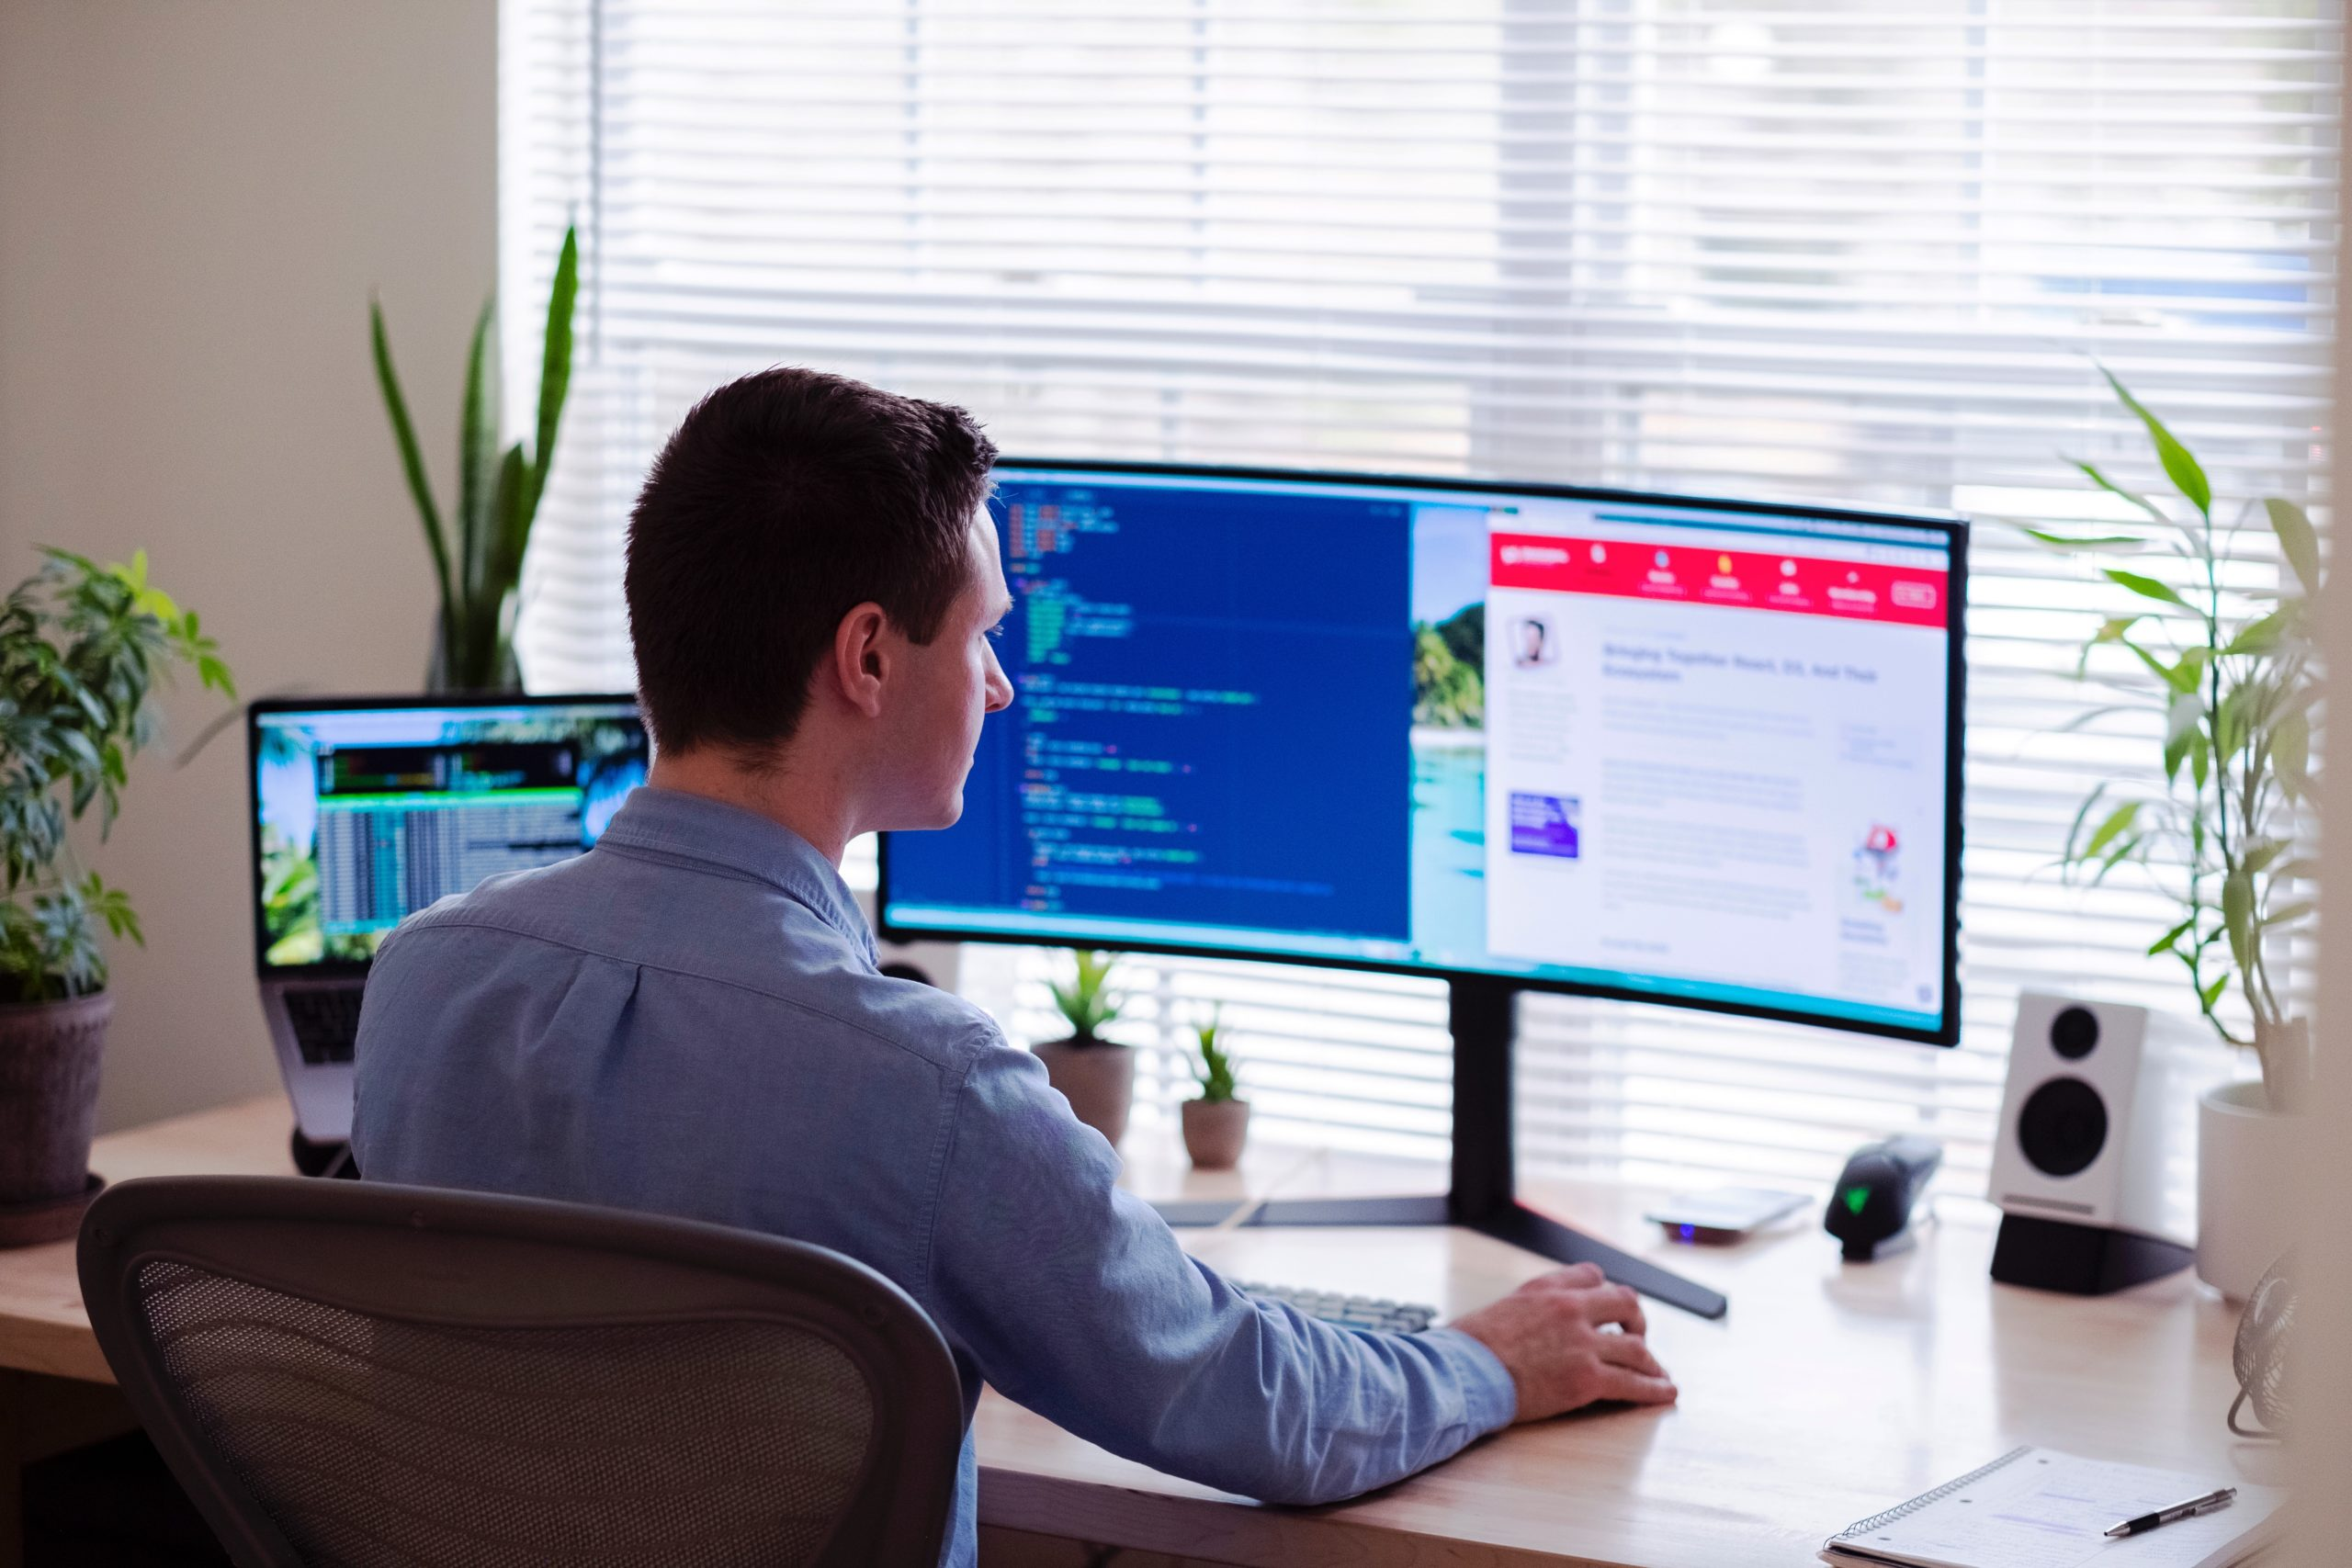 Man working from home on his computer at his desk